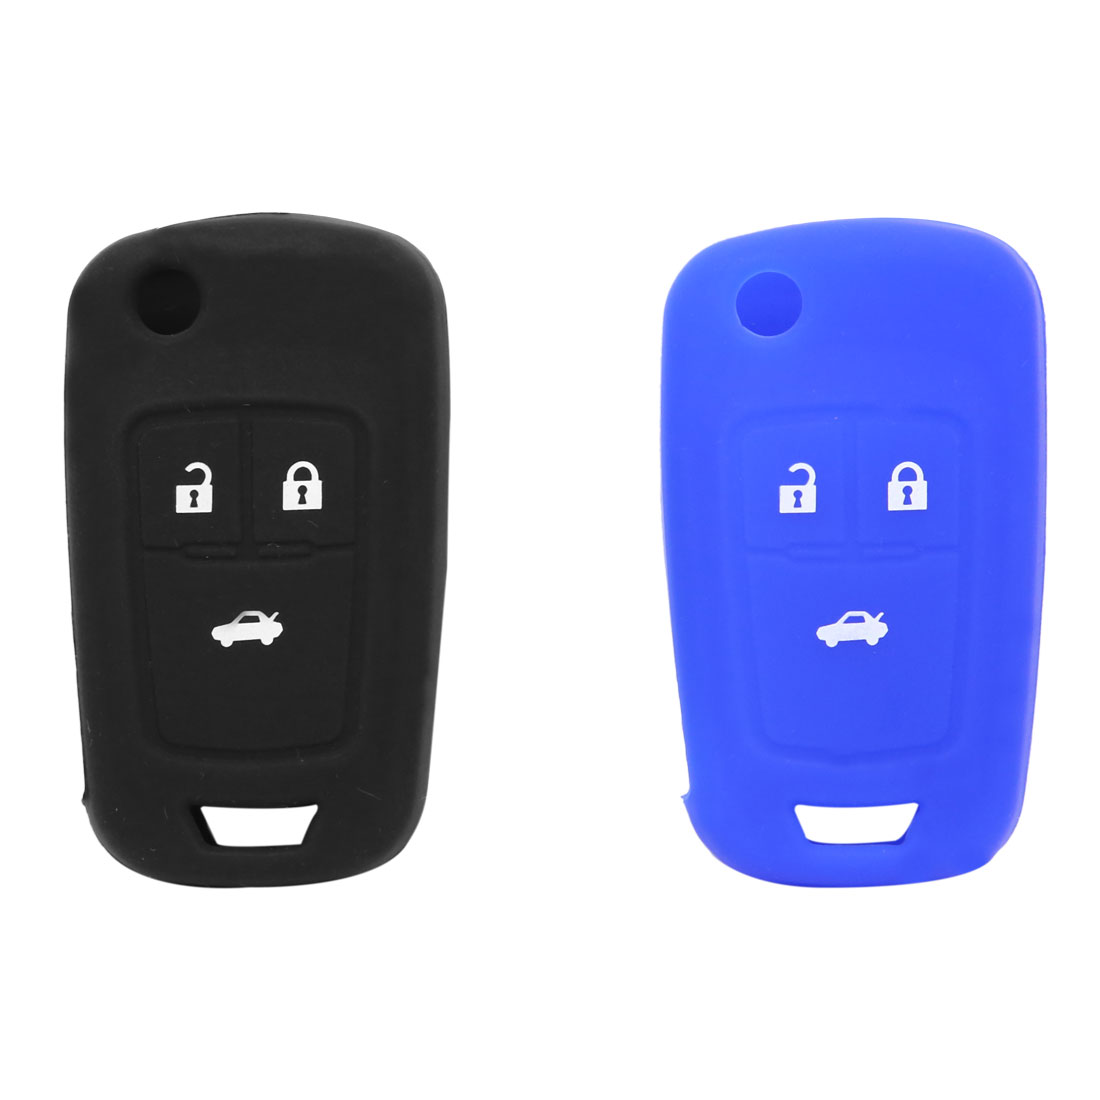 2pcs Blue Black Silicone 3 Btn Remote Key Cover Holder Case Shell for Chevy Cruze - image 1 of 4